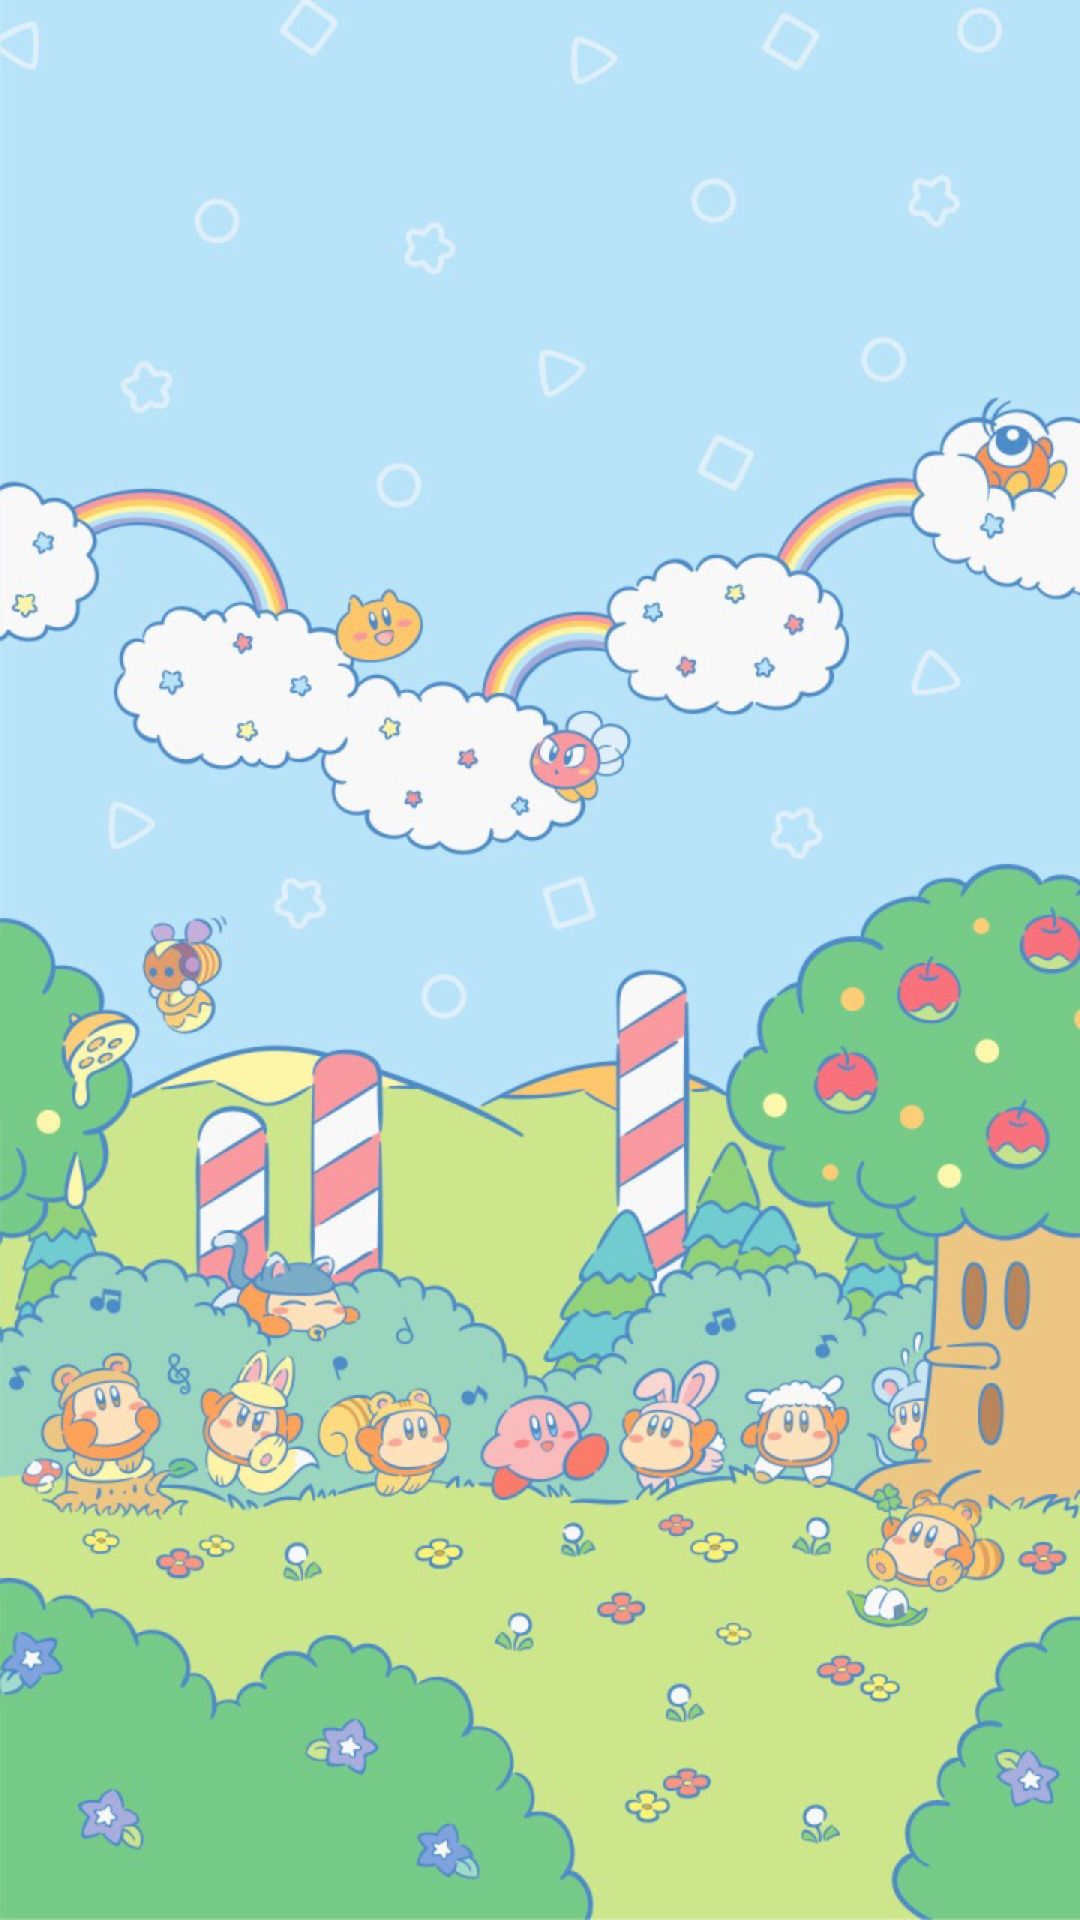 """atokyojourney """"New kirby wallpapers released on Nintendo"""